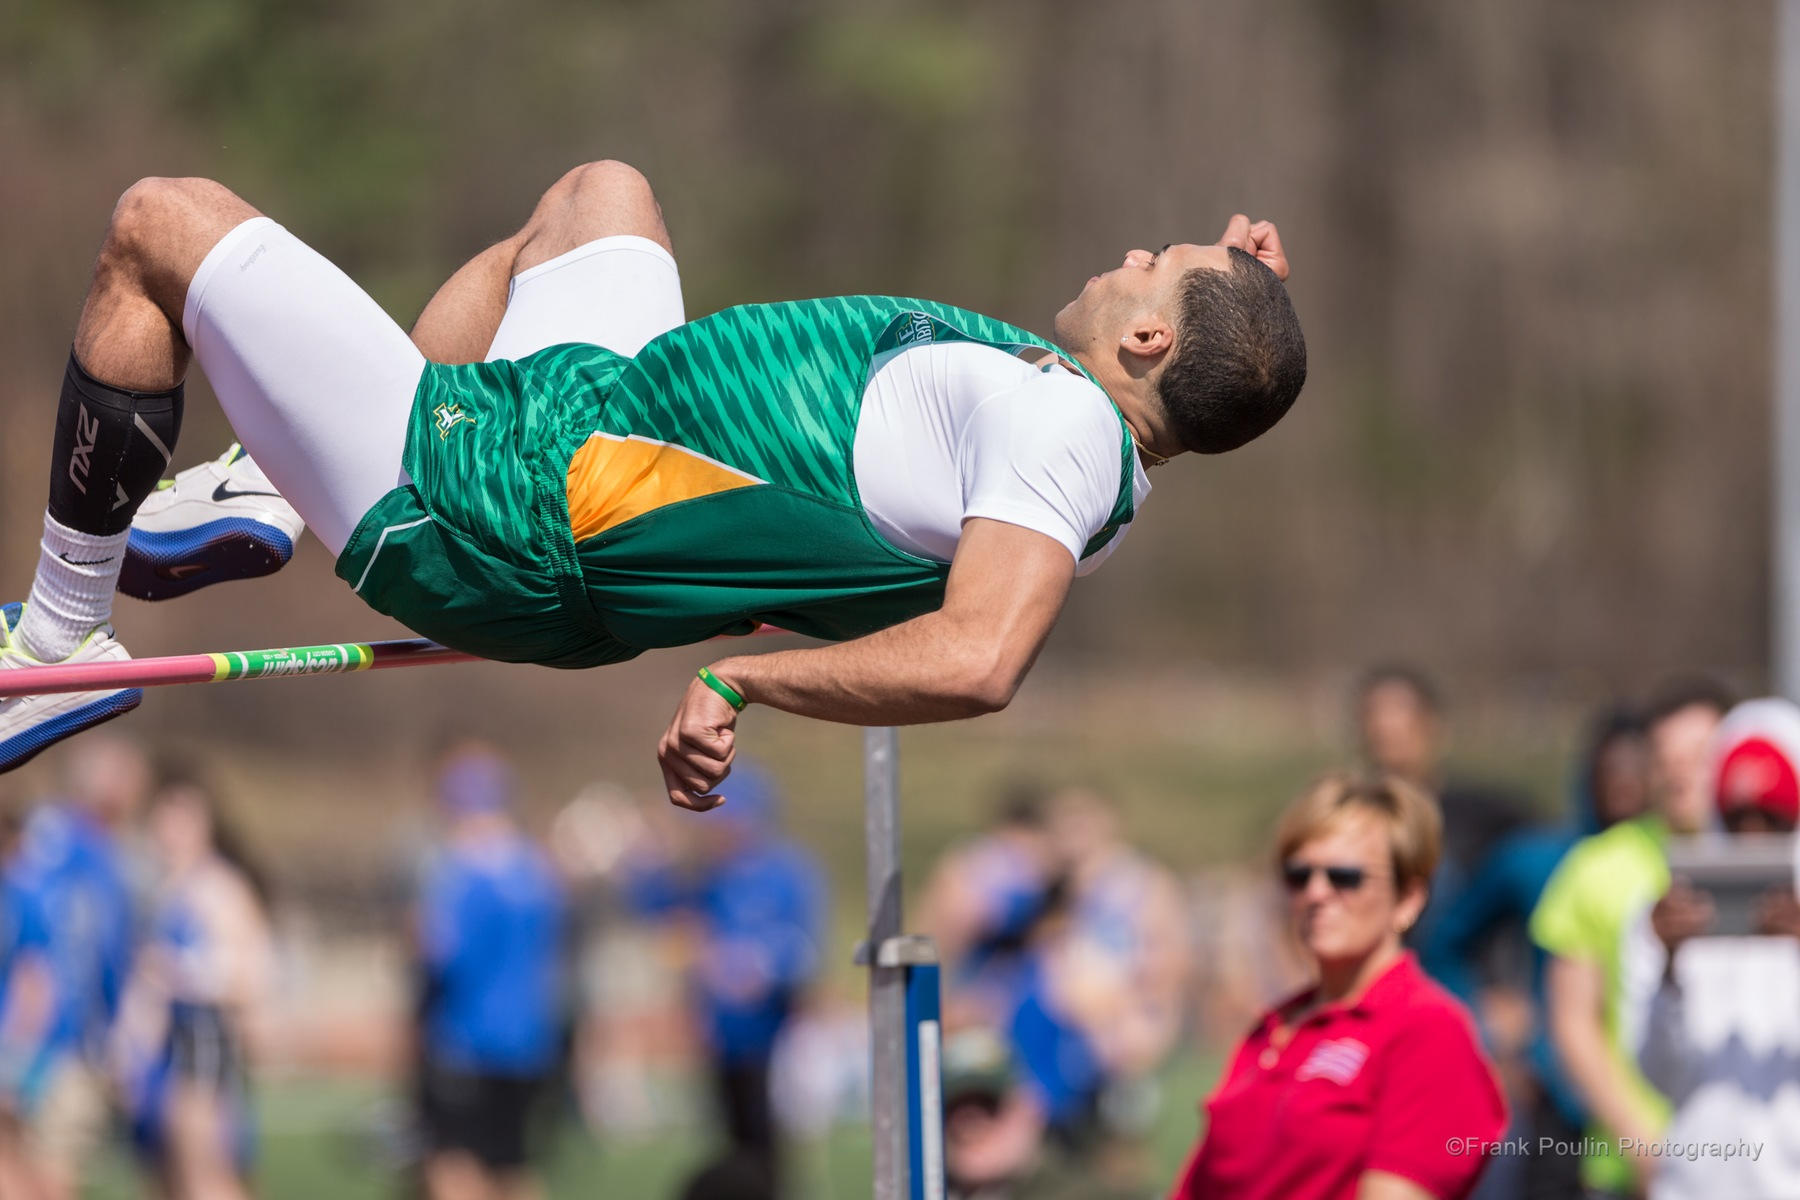 Falcons Shine At ECAC DIII Championships